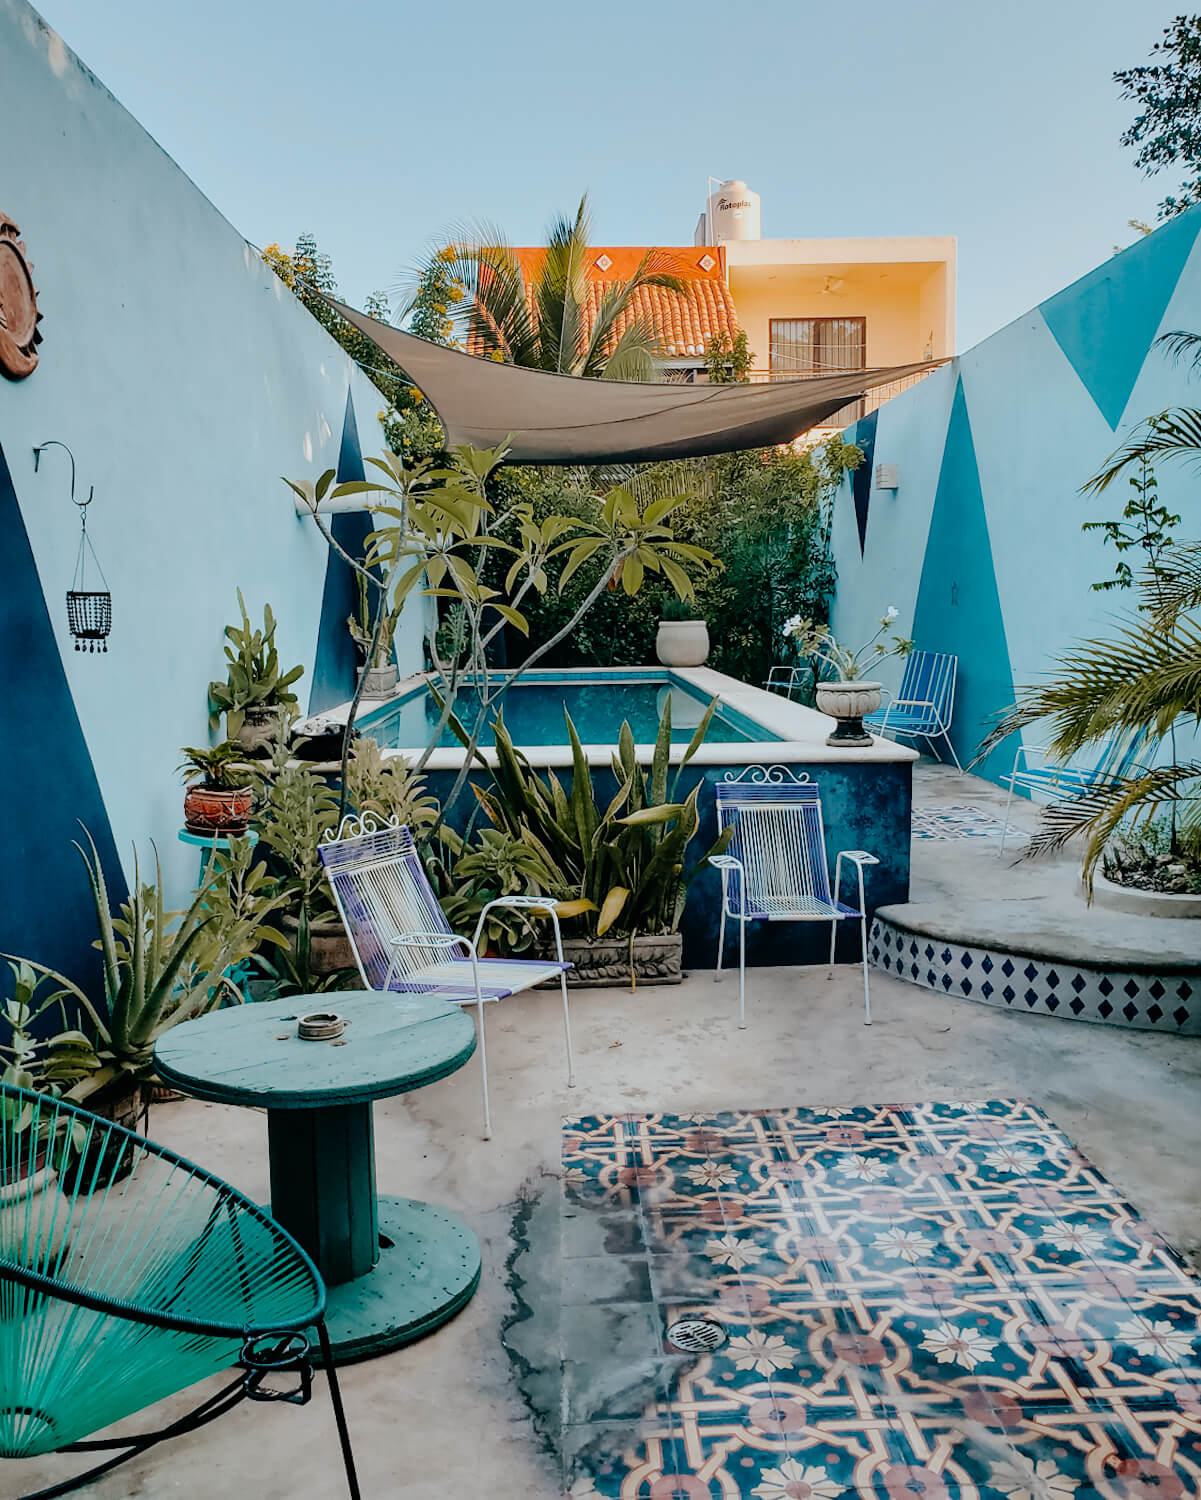 merida mexico boutique airbnb